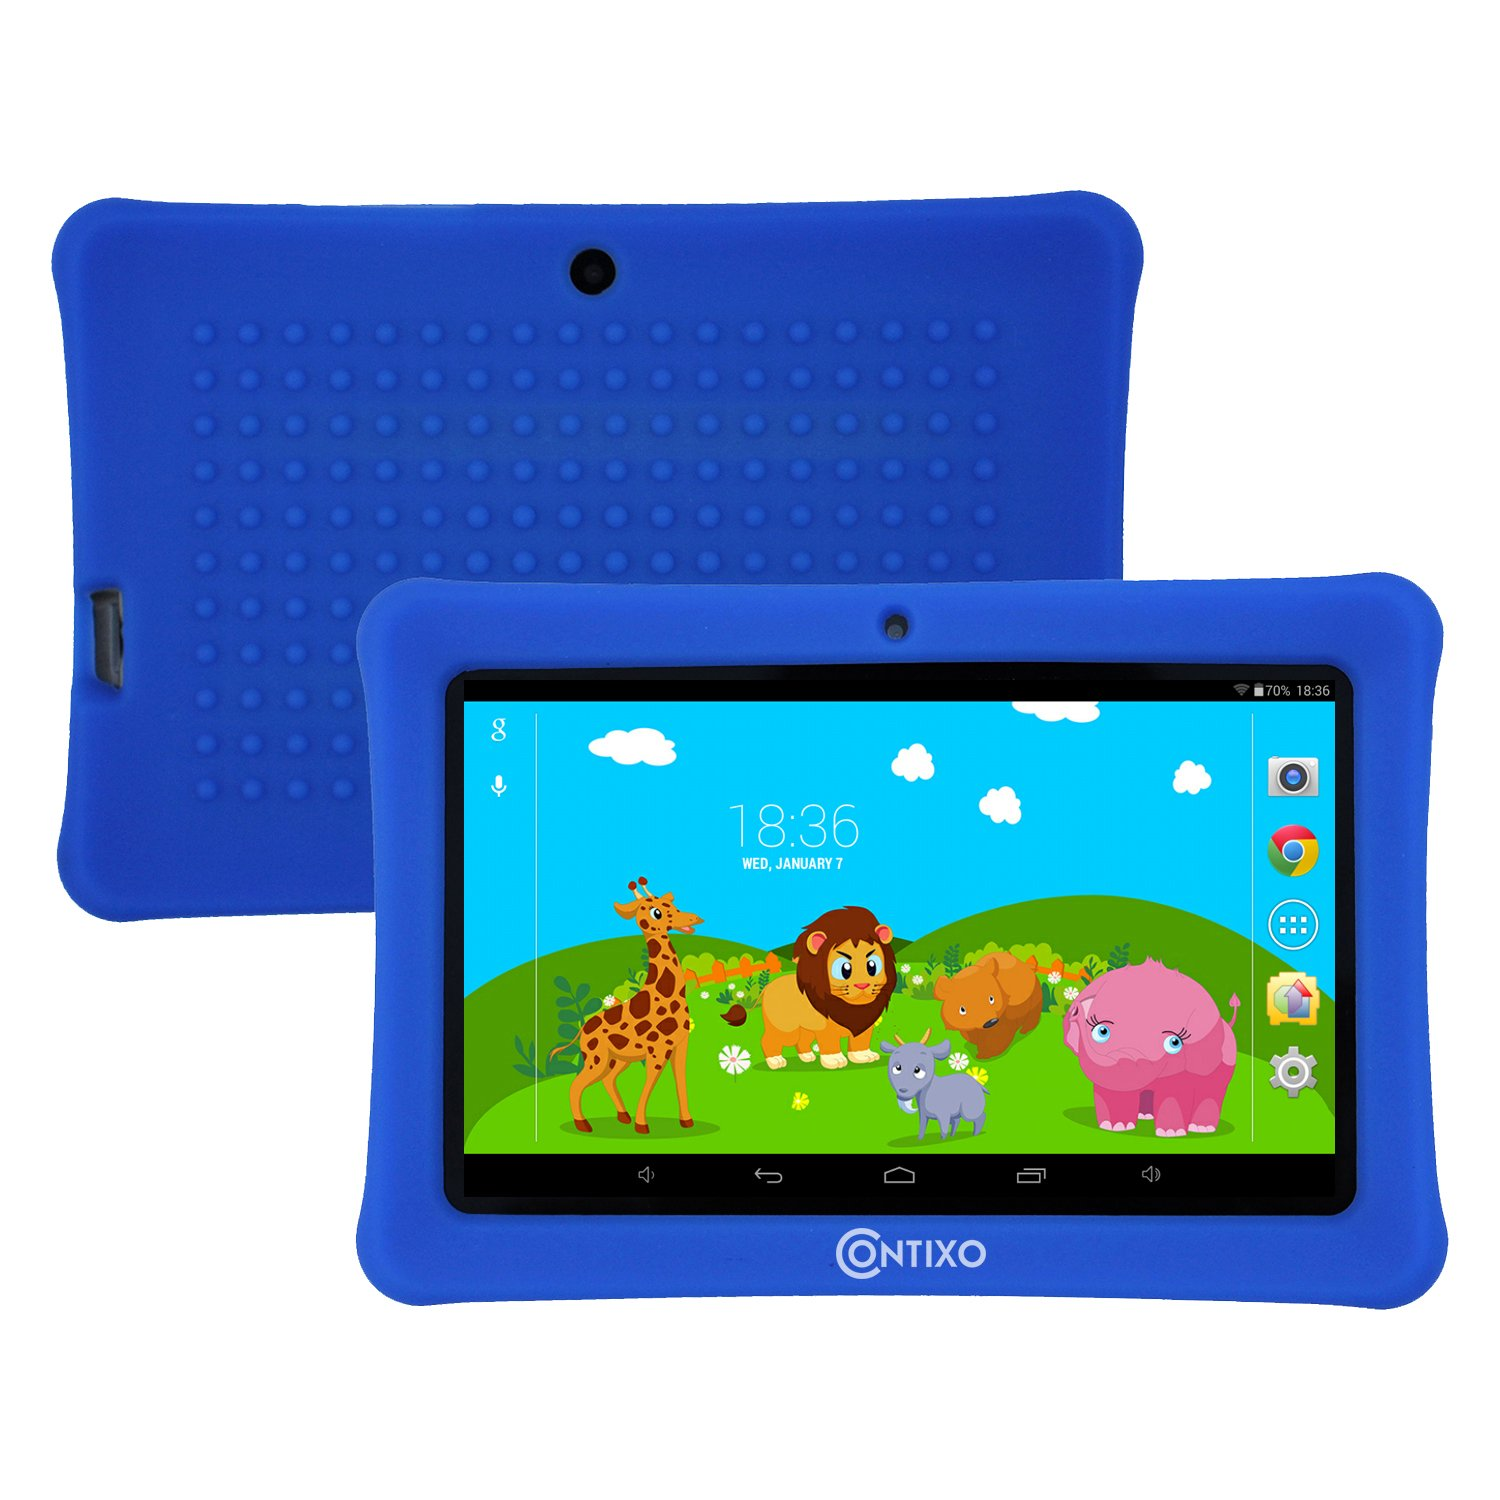 VETERANS DAY SALE! Contixo Kids Safe 7'' HD Quad-Core Tablet W/ KIDOZ, 8GB Bluetooth WiFi, Front & Rear Camera, Free Games, Kids-Place Parental Control, Kid-Proof Case, Best Gift